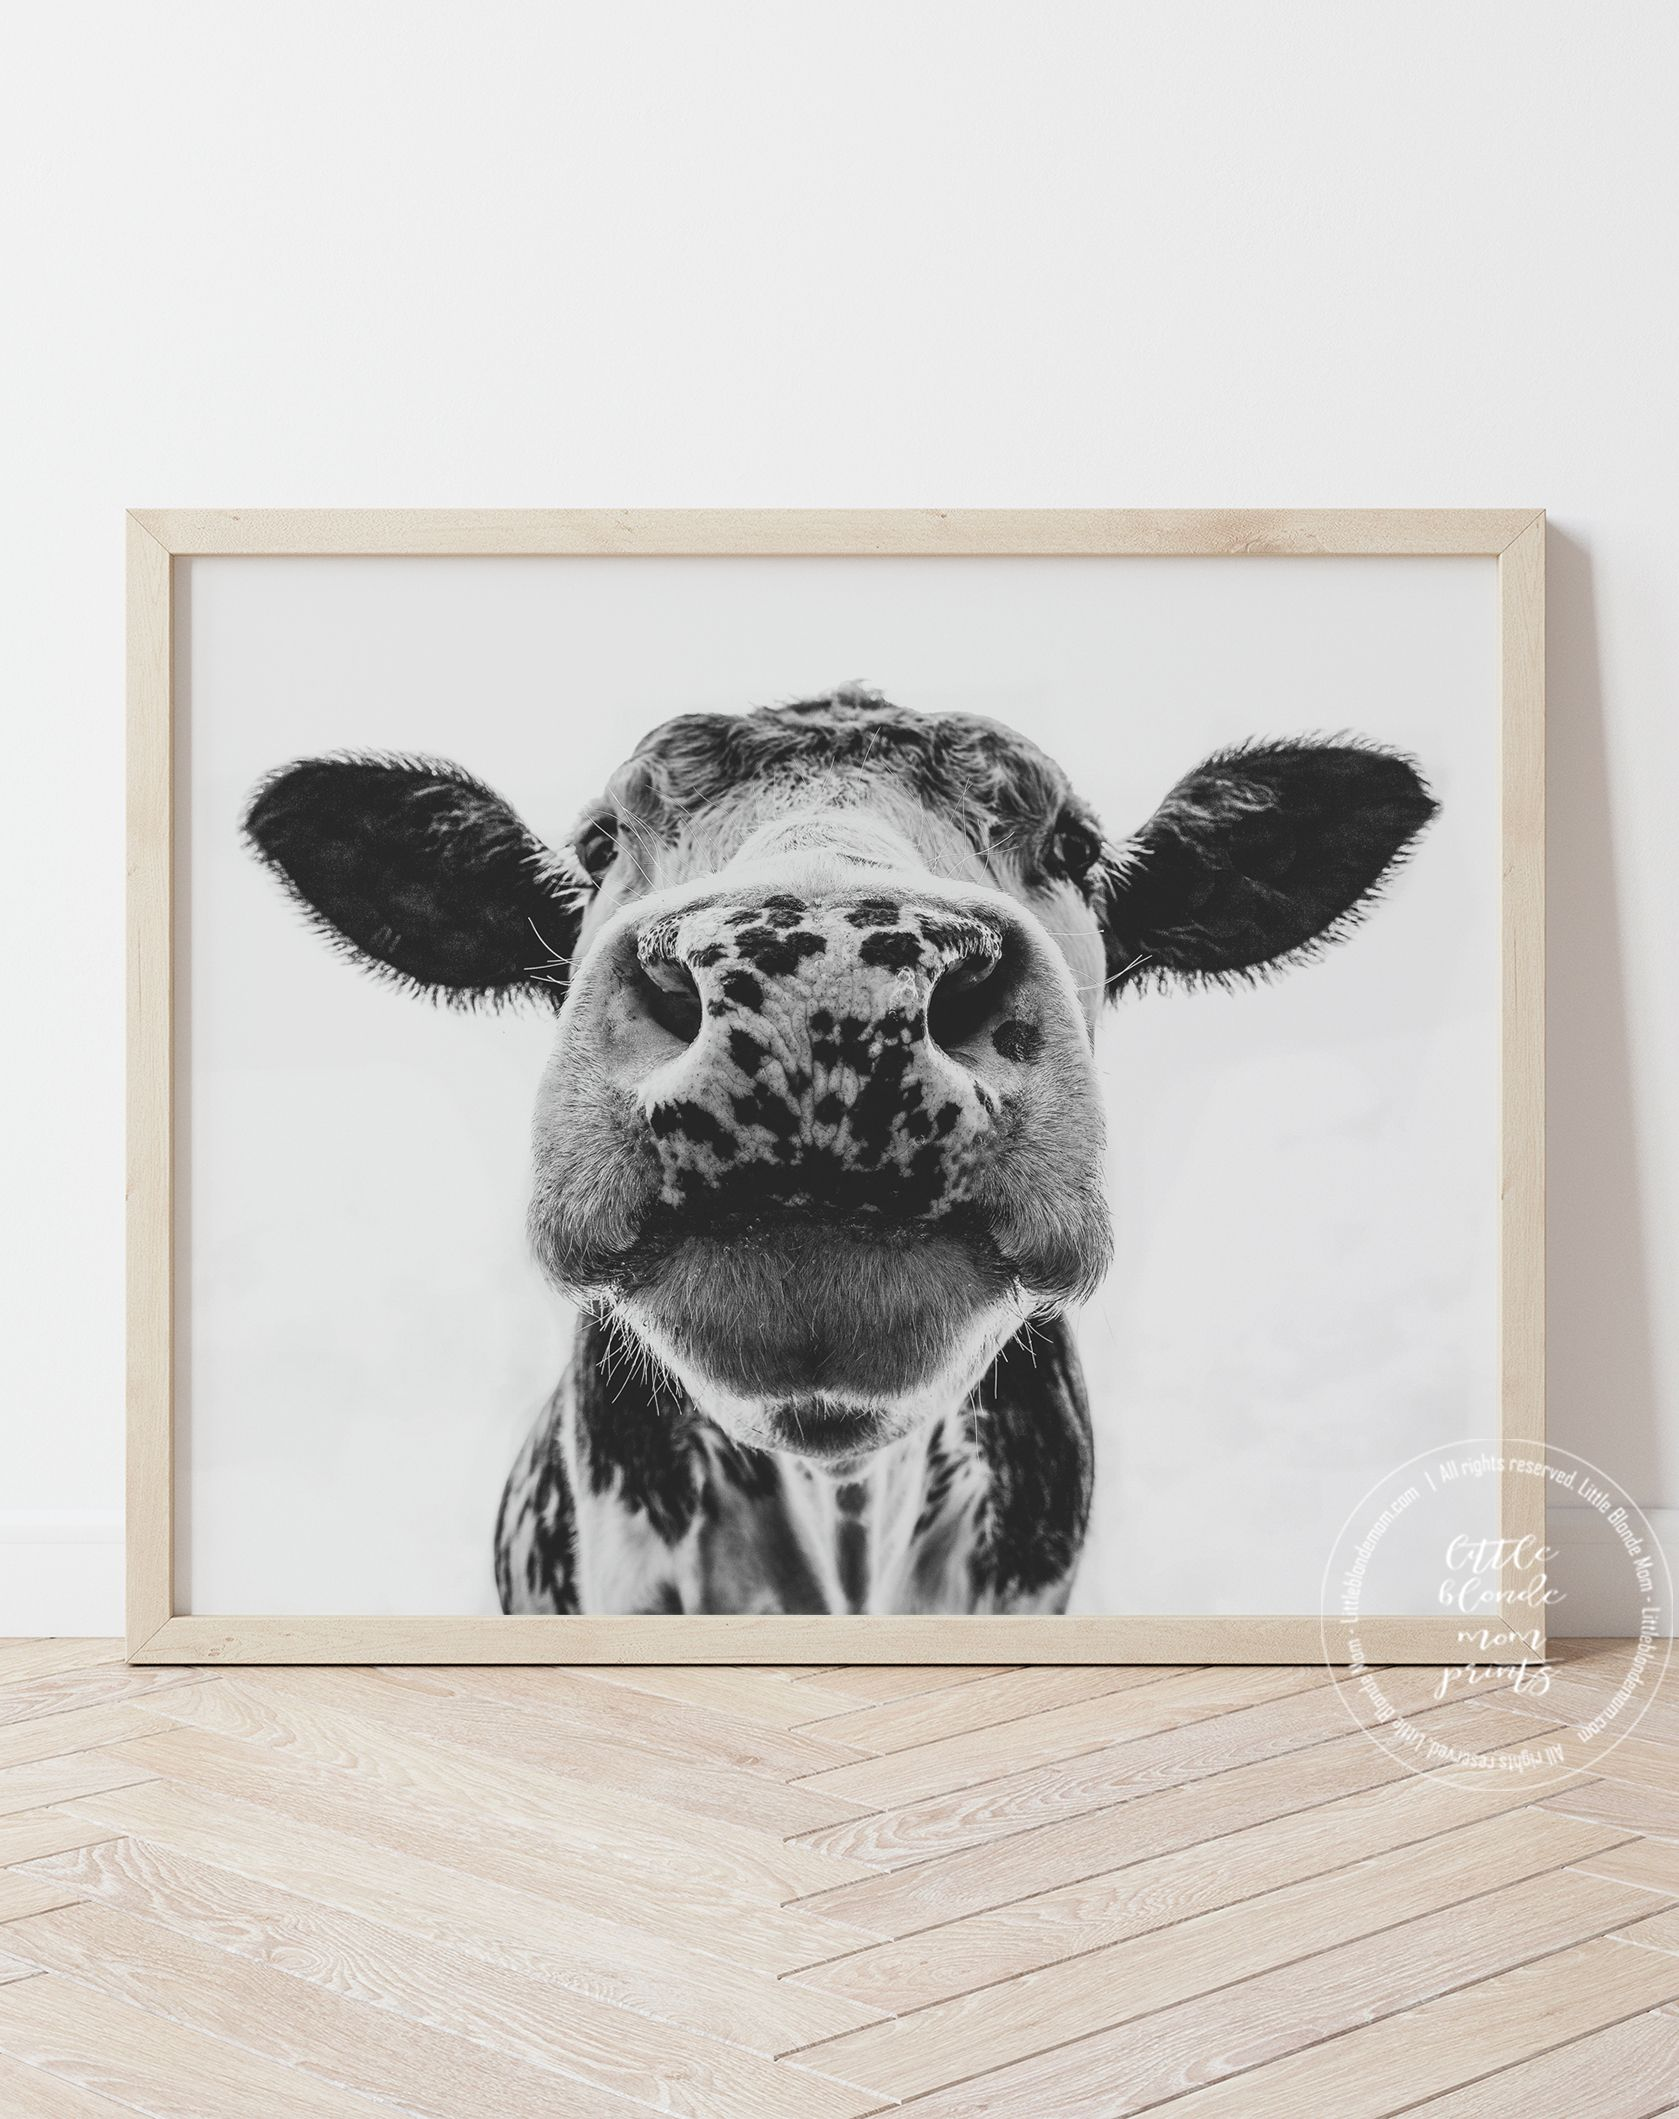 Dairy Cow Face Close Up Poster Print Farmhouse Decor Etsy In 2020 Animal Wall Art Poster Prints Cow Face